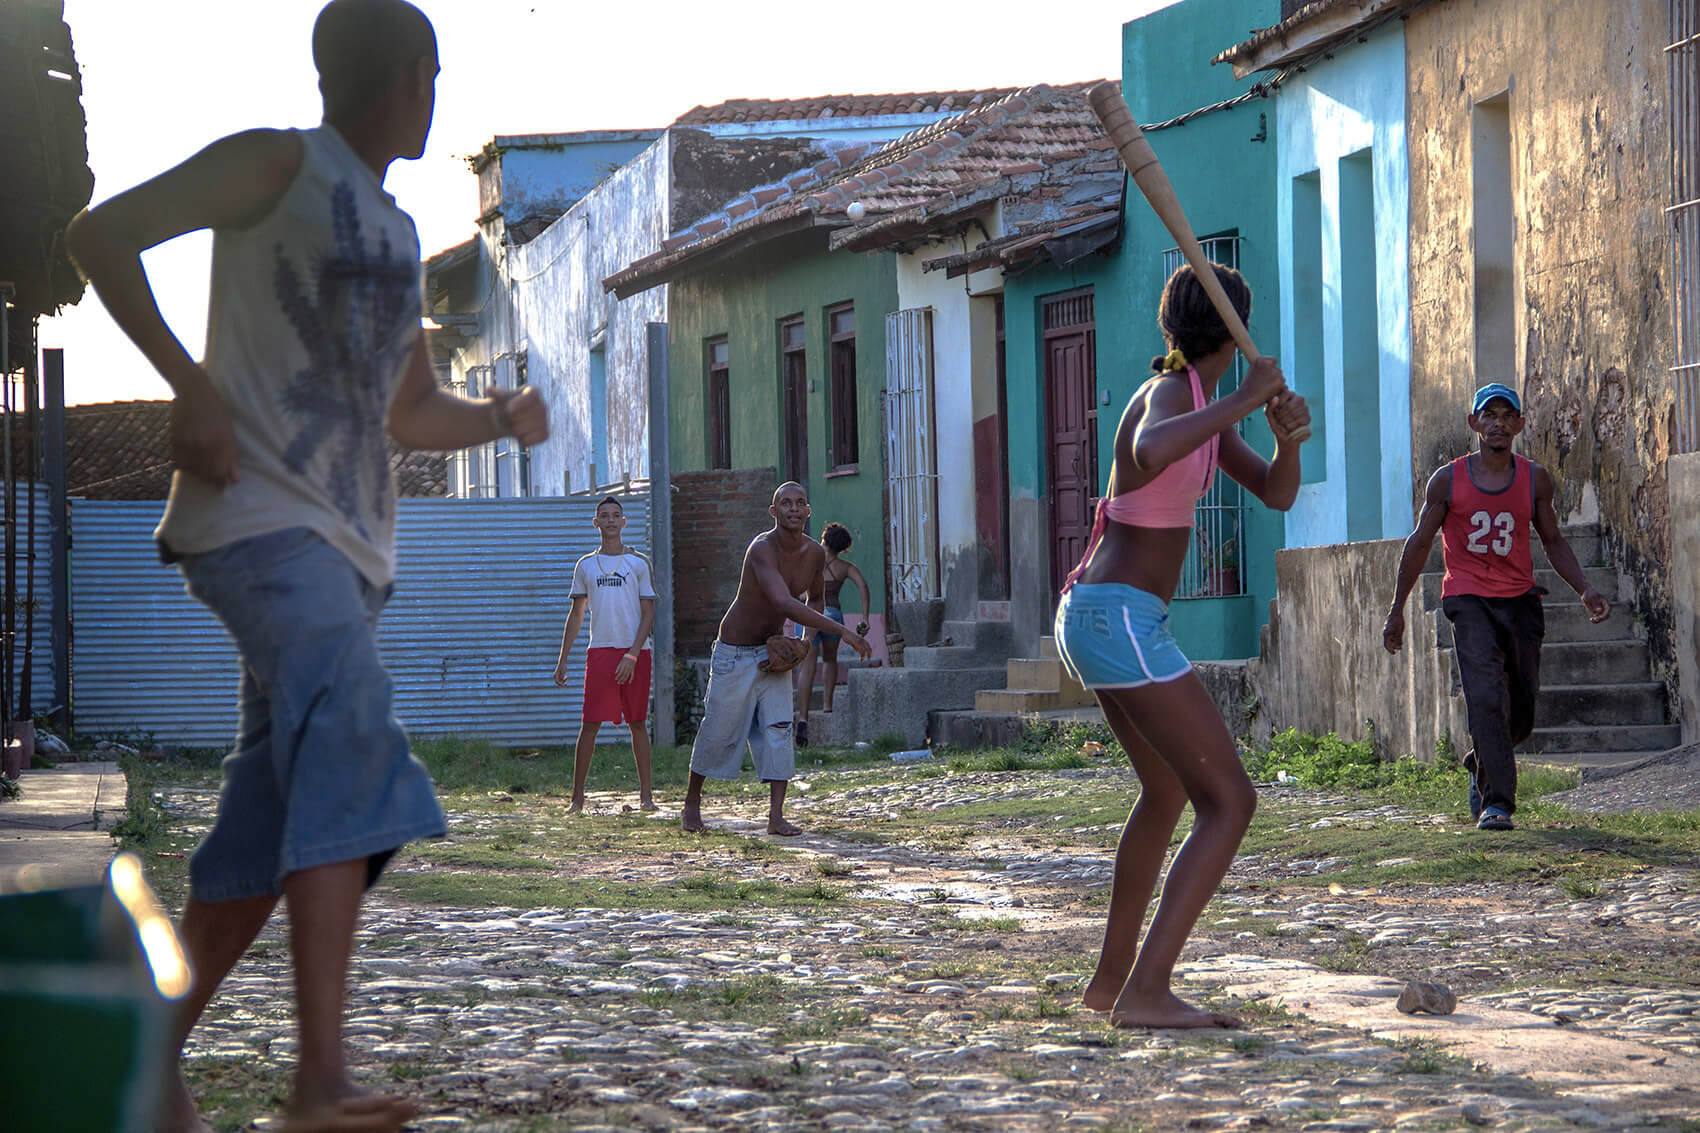 Kids playing baseball in the streets of Trinidad de CubaKids playing baseball in the streets of Trinidad de Cuba